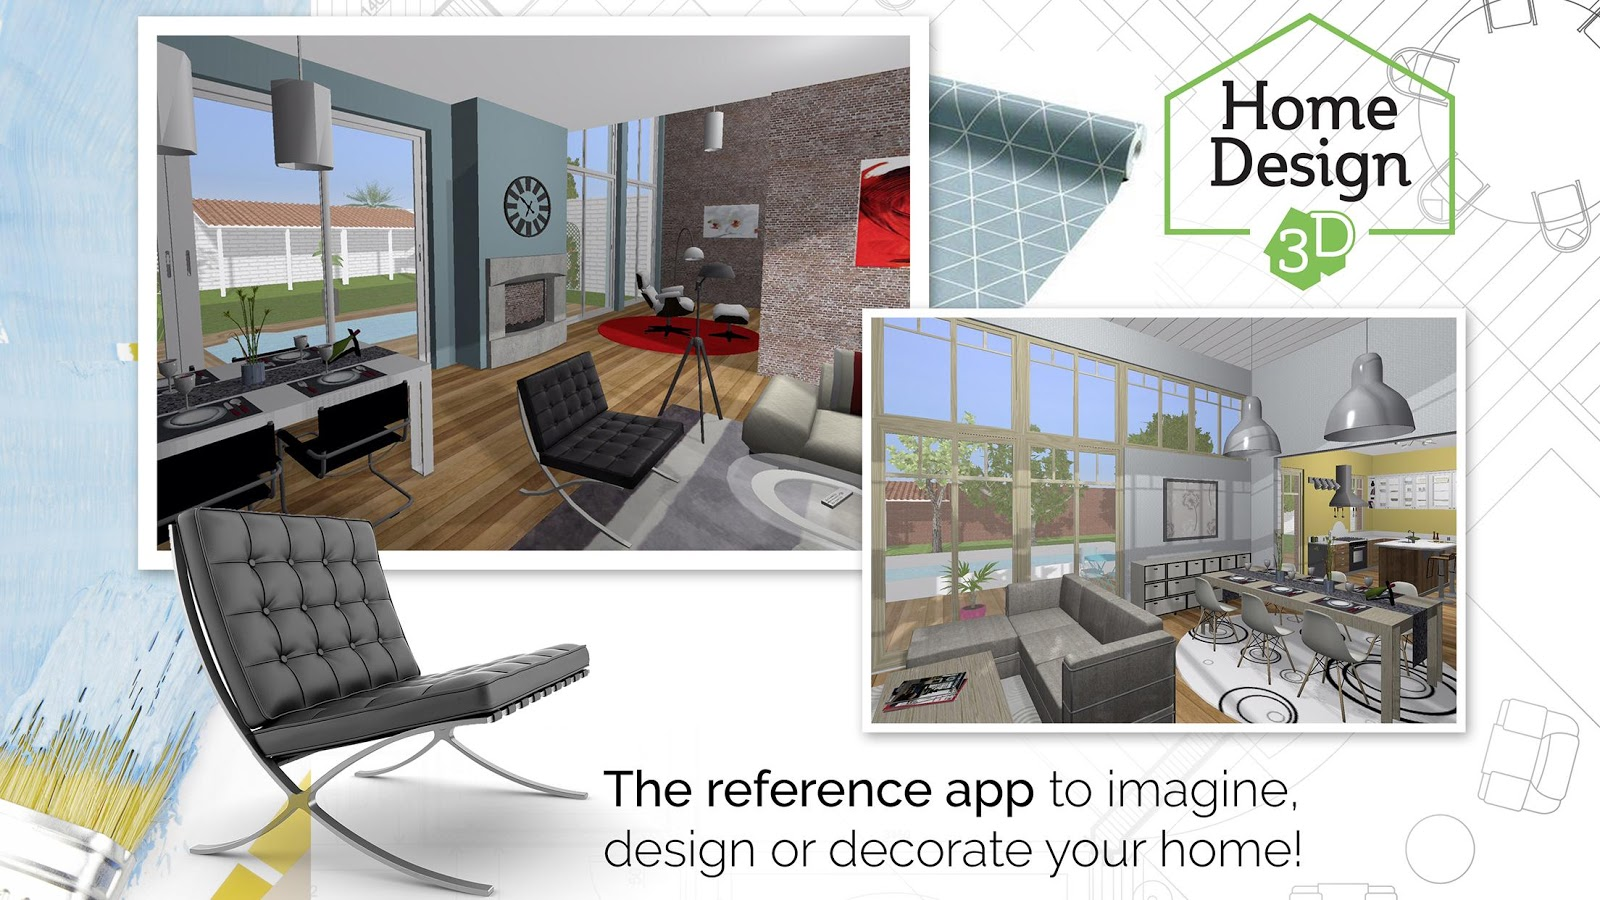 Home design 3d freemium android apps on google play Design your house app